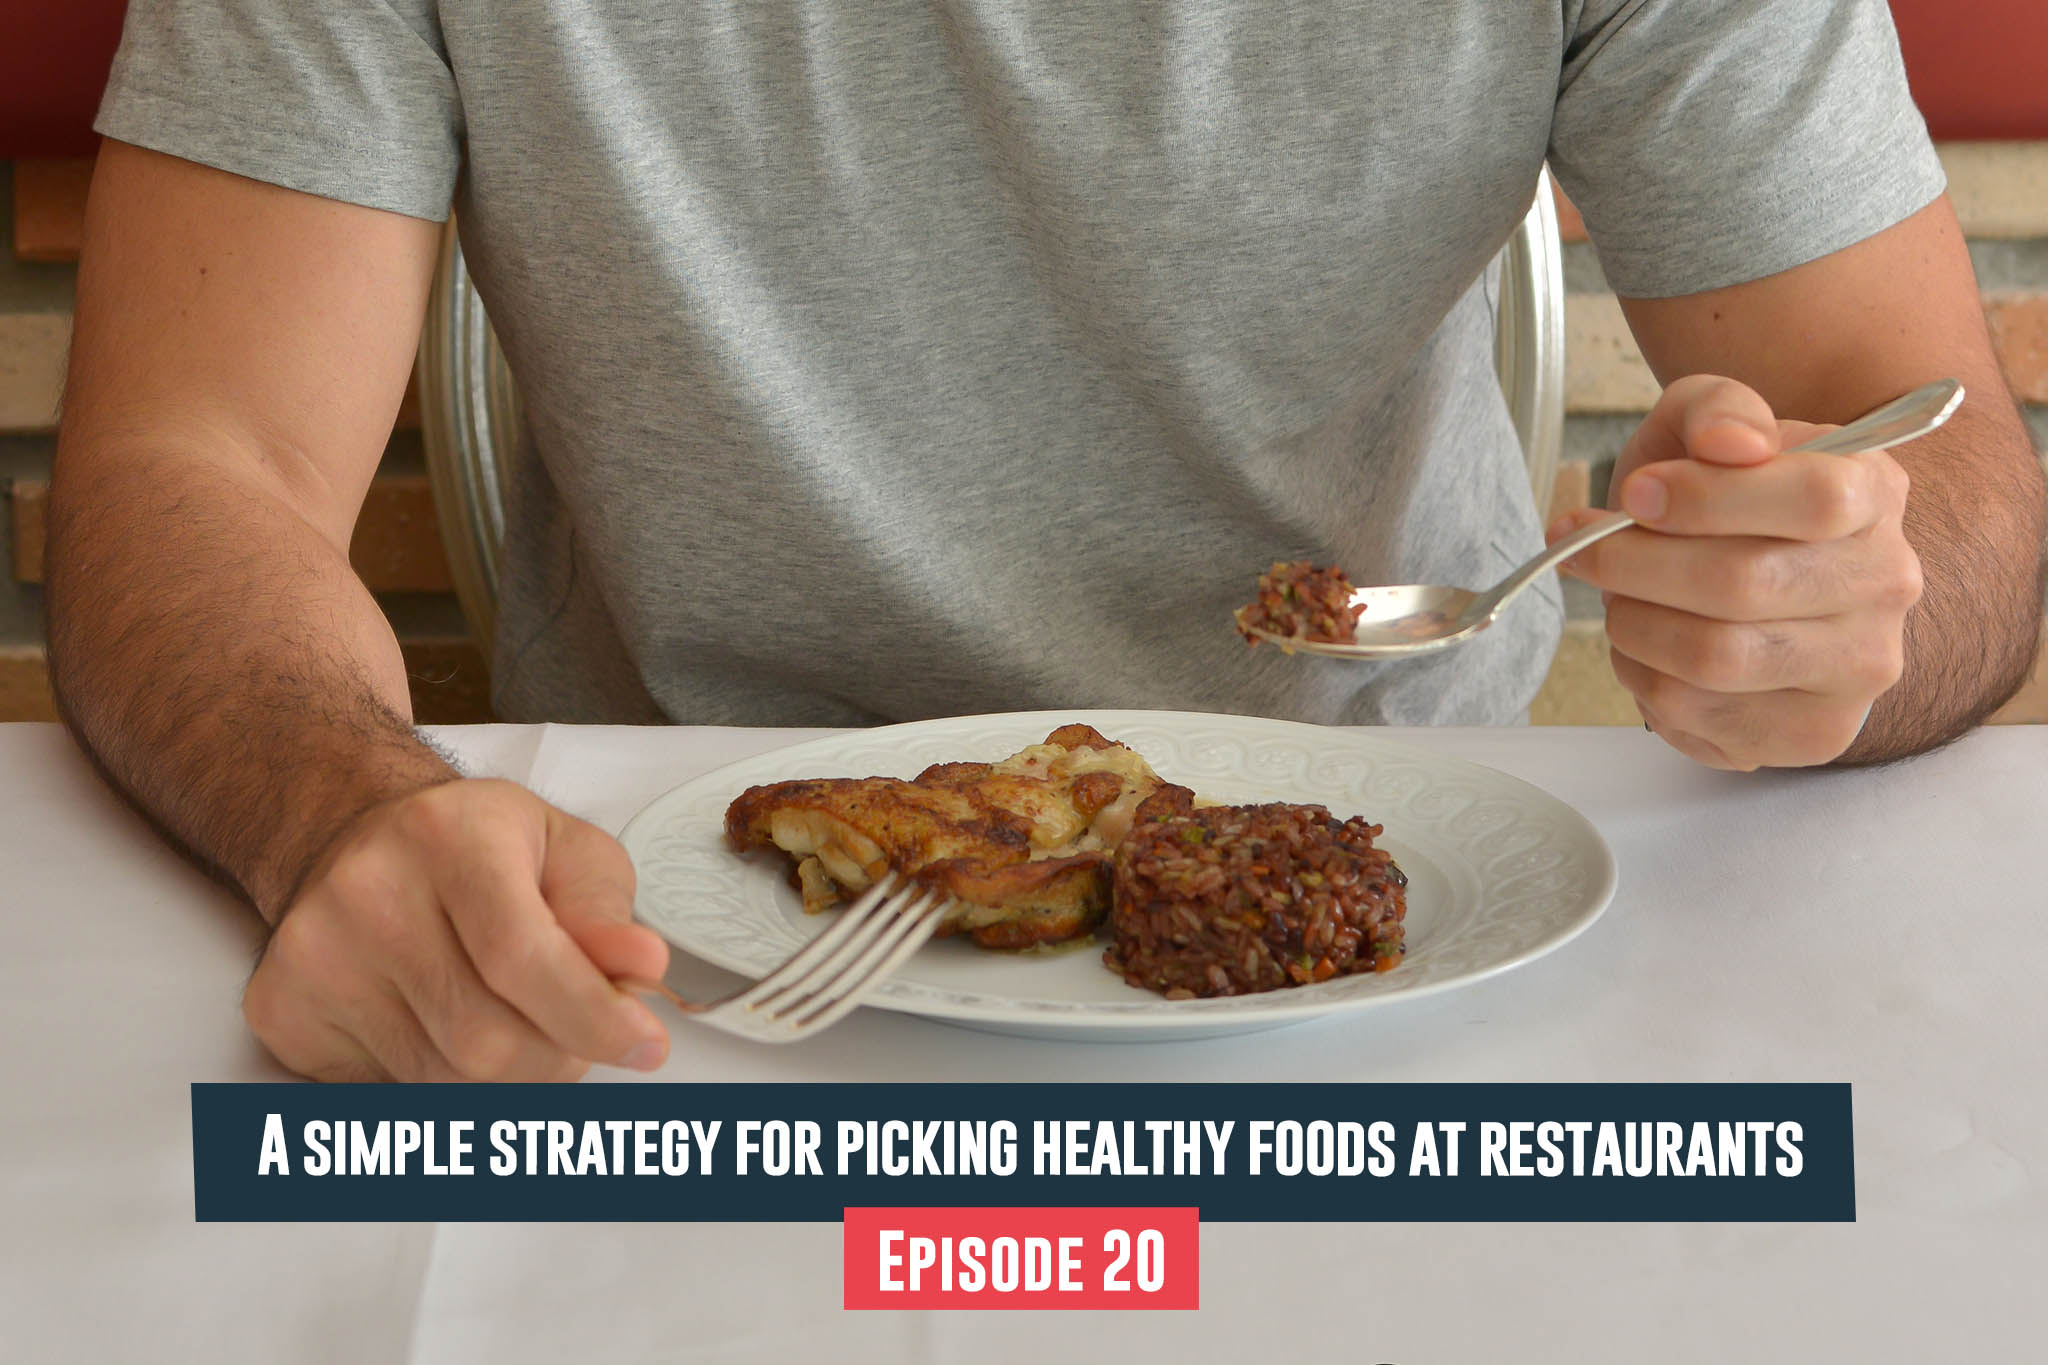 Picking Healthy Foods At Restaurants